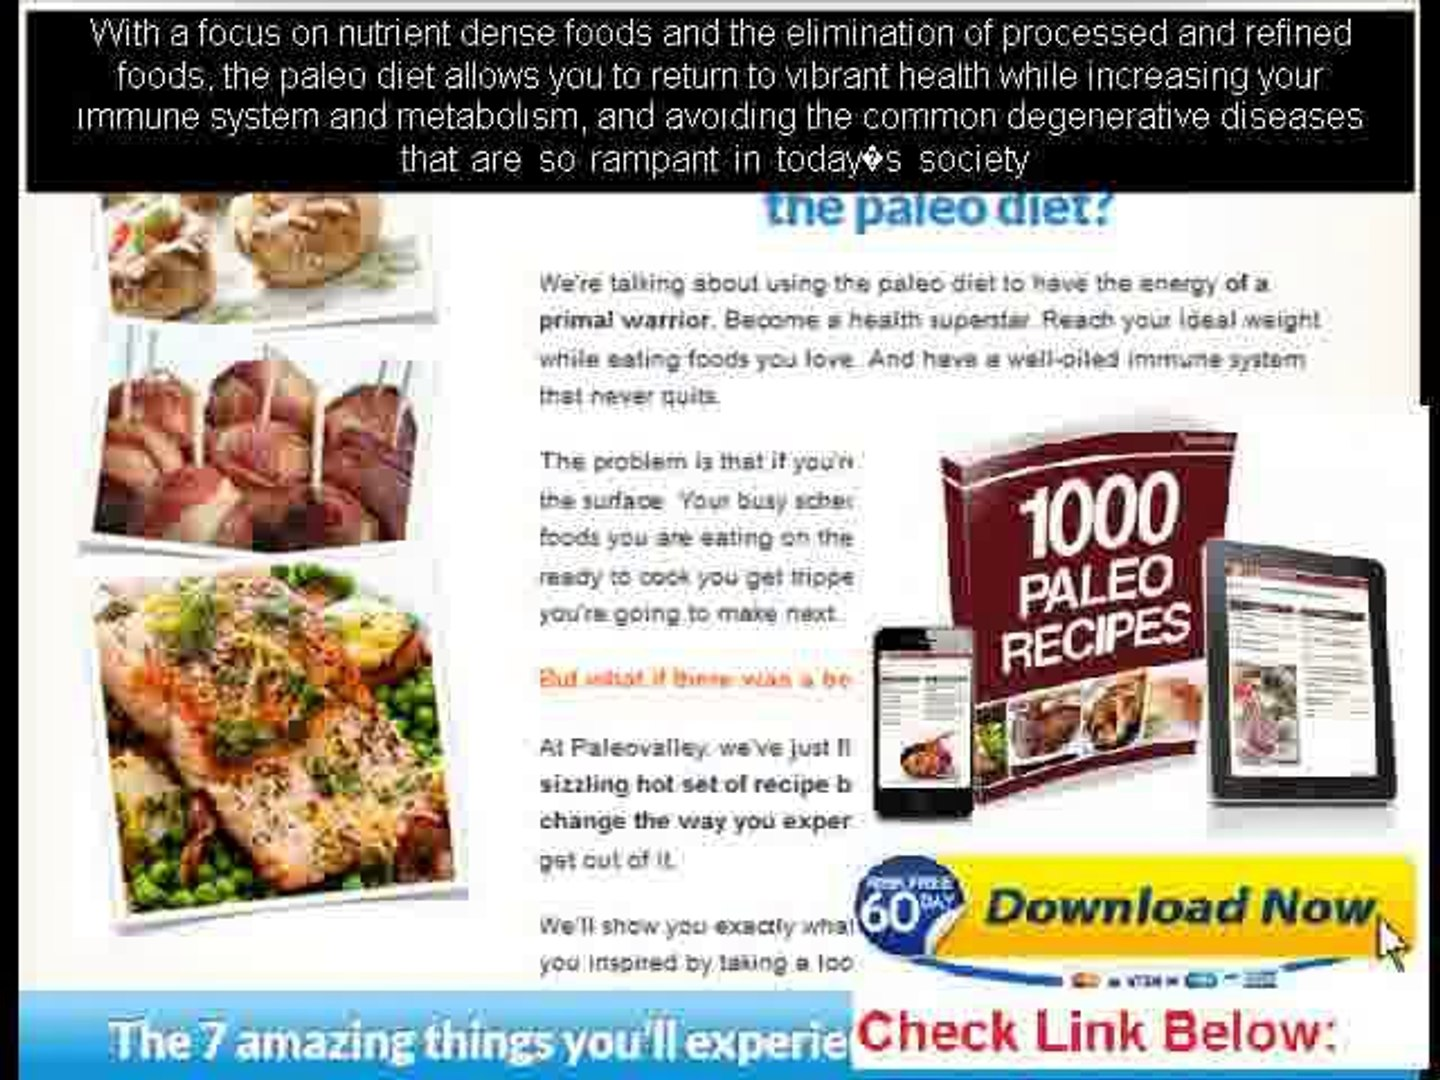 a free paleo diet meal plans